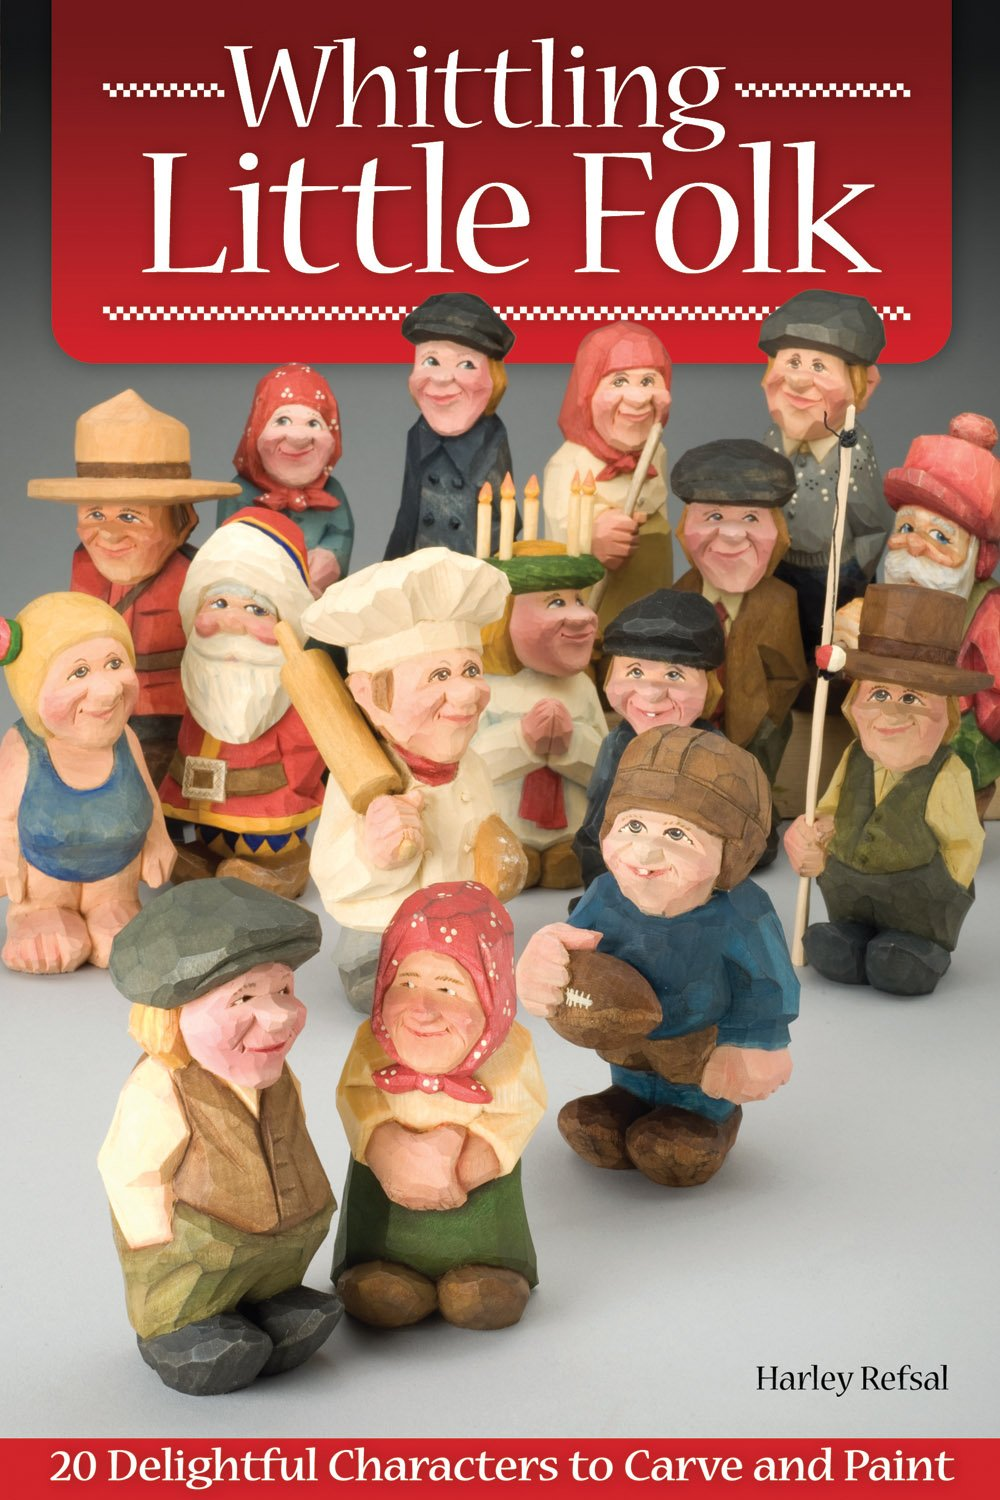 whittling-little-folk-20-delightful-characters-to-carve-and-paint-fox-chapel-publishing-scandinavian-style-flat-plane-carving-with-4-perspective-photos-providing-360-degree-views-of-each-project